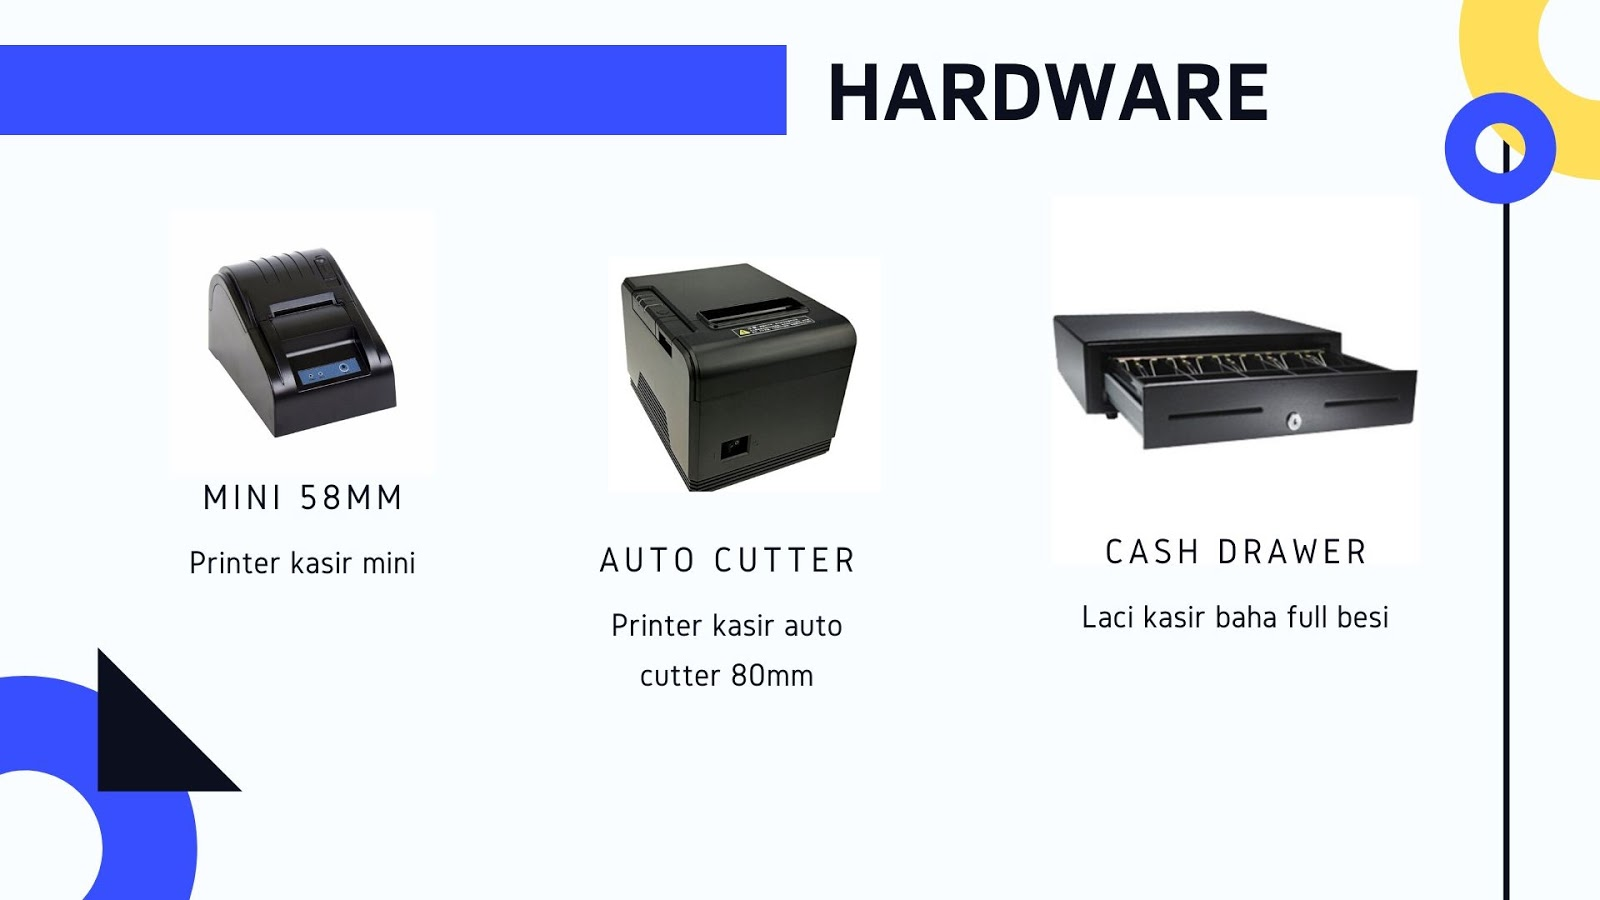 TABLET POS POINT OF SALE - mesin kasir, tablet pos, point of sale, mesin kasir online, hewlett packard, HP, pos, harga, kasir, mesin, online, list, tablet